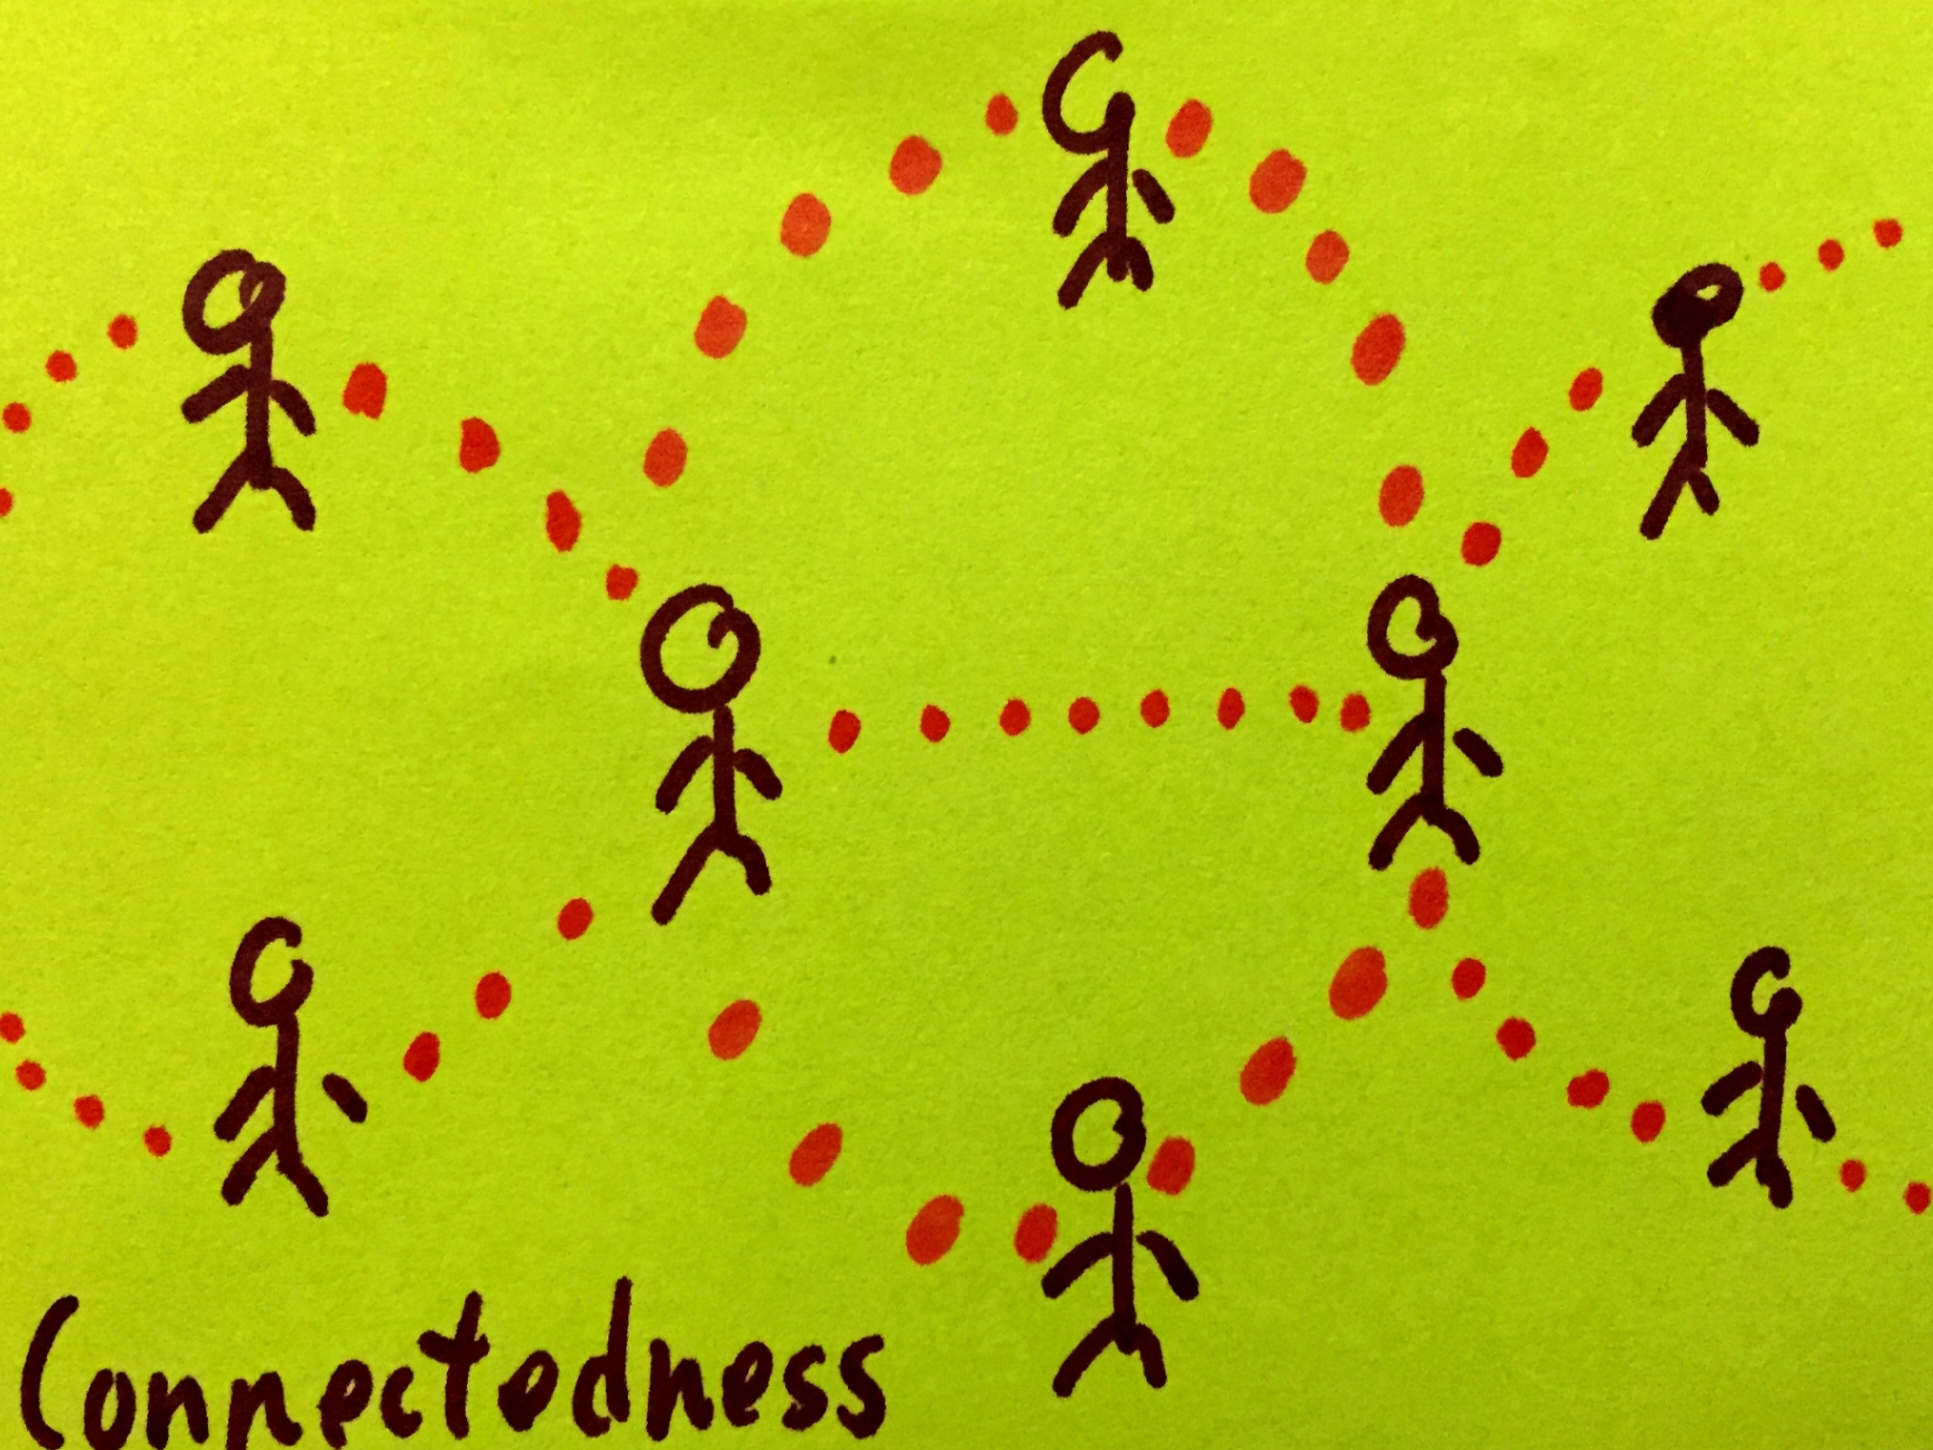 Connectedness StrengthsFinder Singapore Dots Connecting People